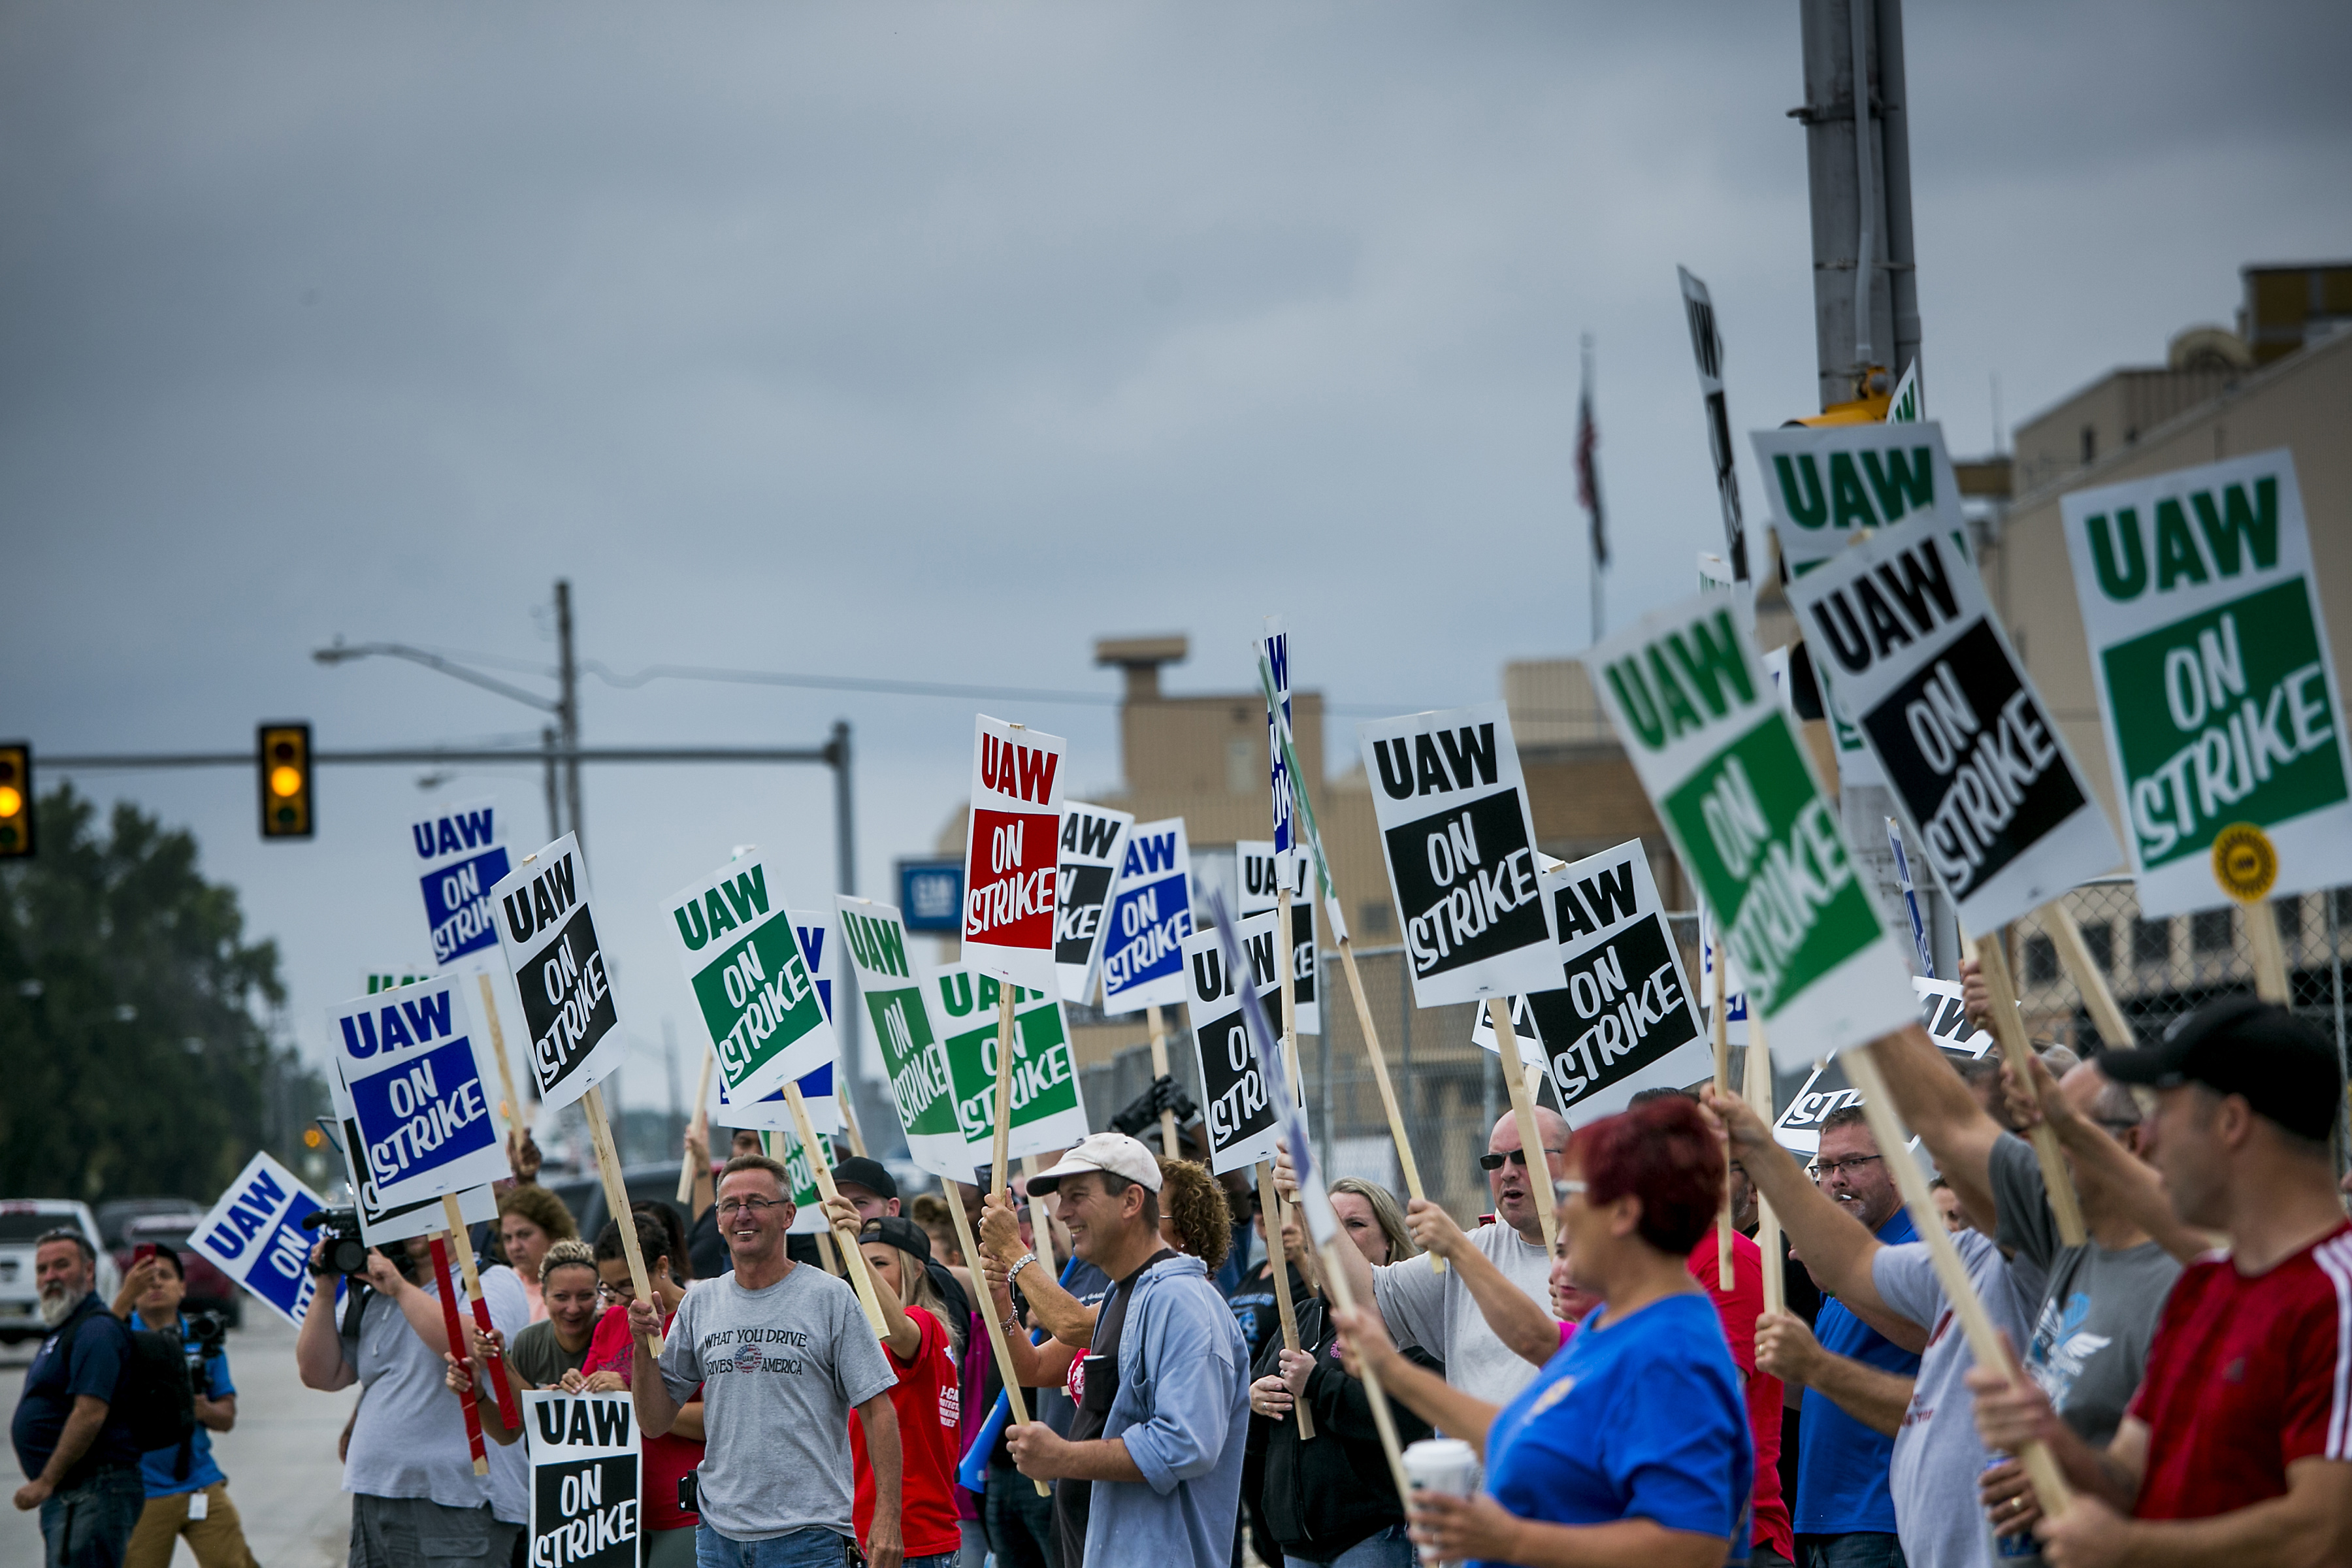 GM Faces Losses Of $50 Million A Day As UAW Digs In For Strike